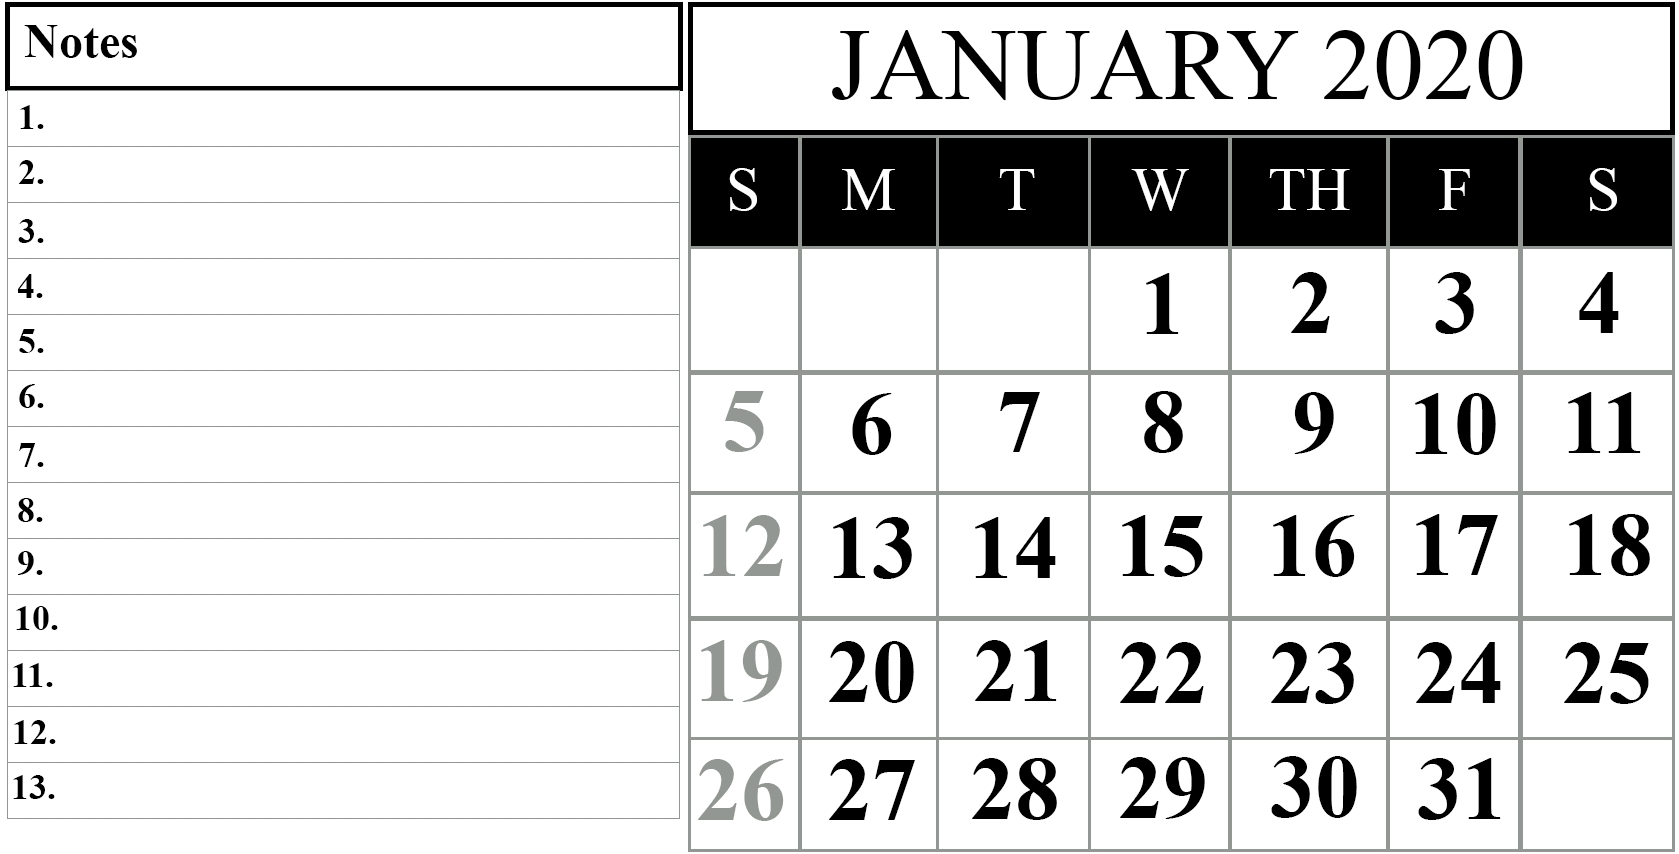 Free January 2020 Printable Calendar In Pdf, Excel & Word-January 2020 Calendar Printable Wincalendar